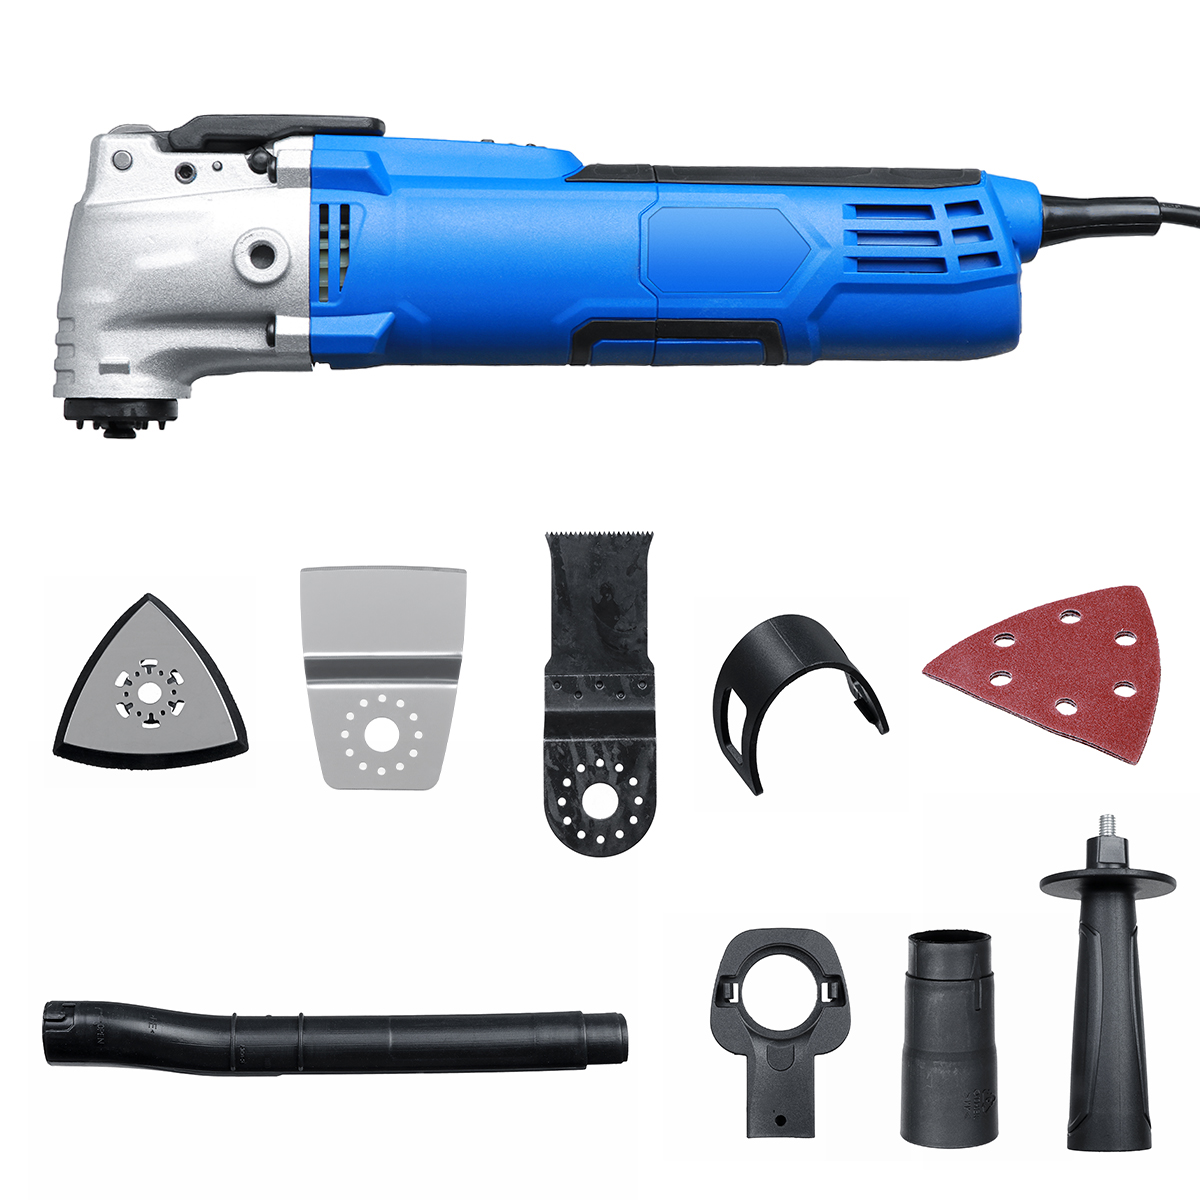 220V Electric Polisher Cutter Trimmer Electric Saw Renovator Tool Woodworking Oscillating Tool